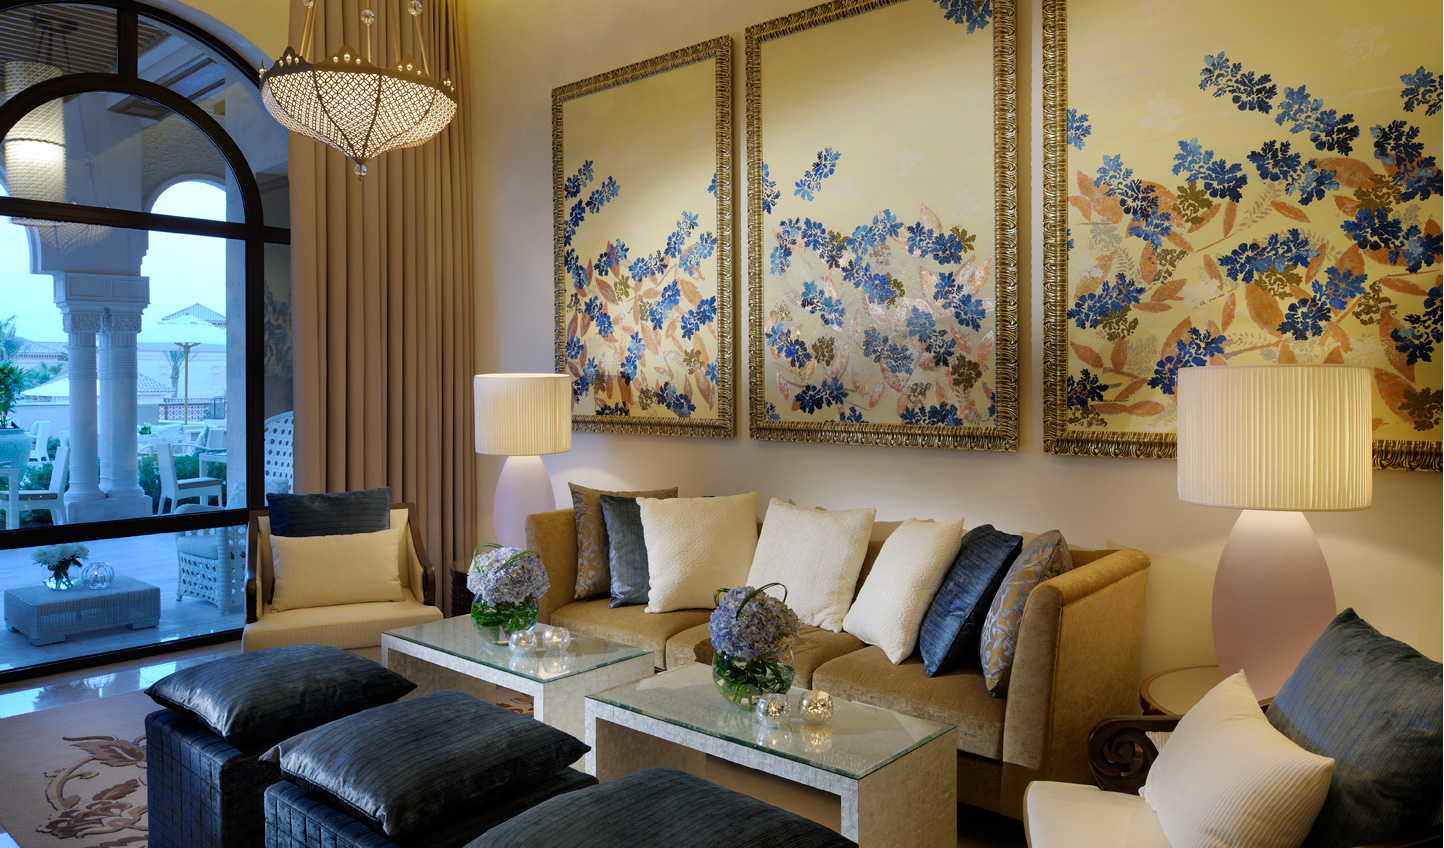 Relax in style and indulge in plush furnishings in one of the many lounges at One&Only The Palm